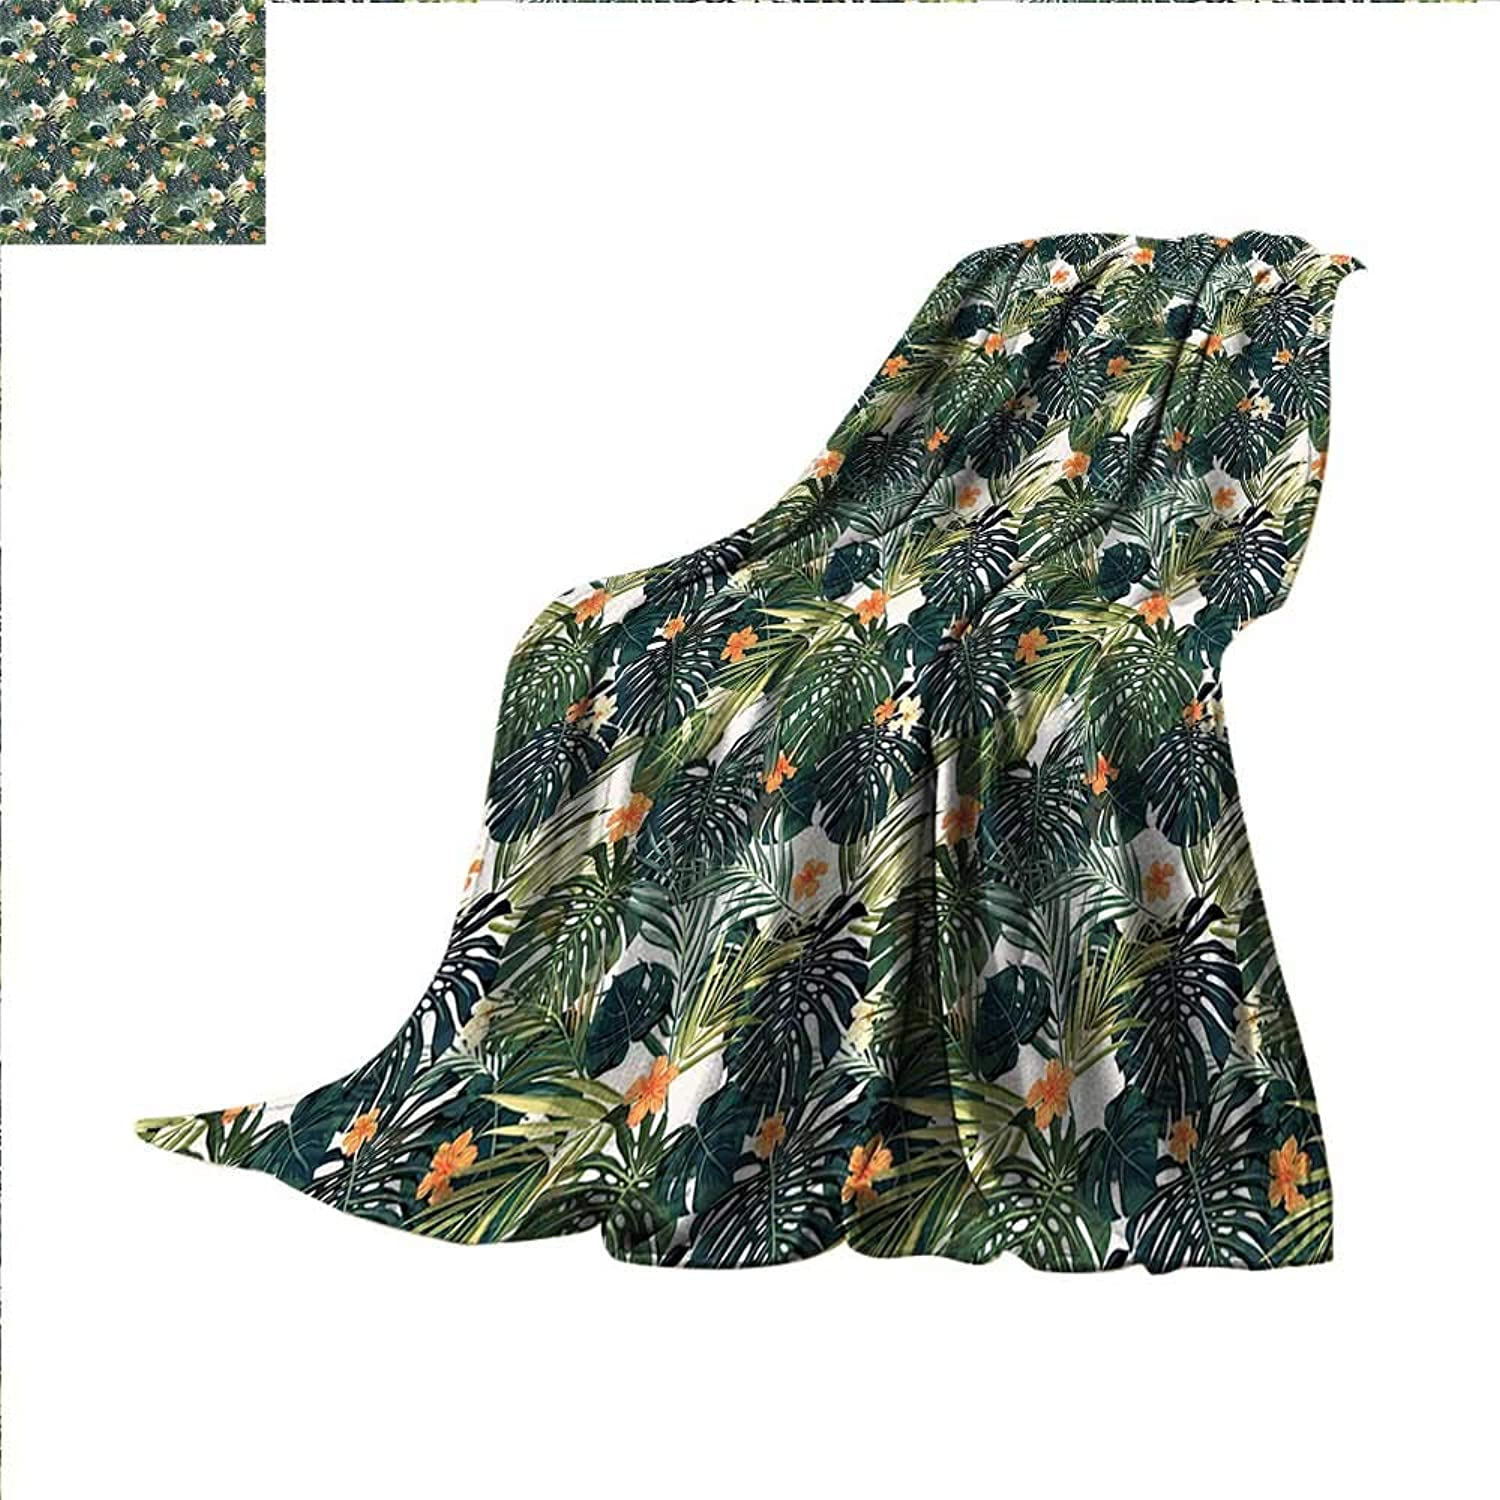 Smallbeefly Green Digital Printing Blanket Hawaiian Summer Aloha Pattern with Tropical Plants and Hibiscus Flowers Summer Quilt Comforter 60 x50  Green Dark Teal orange